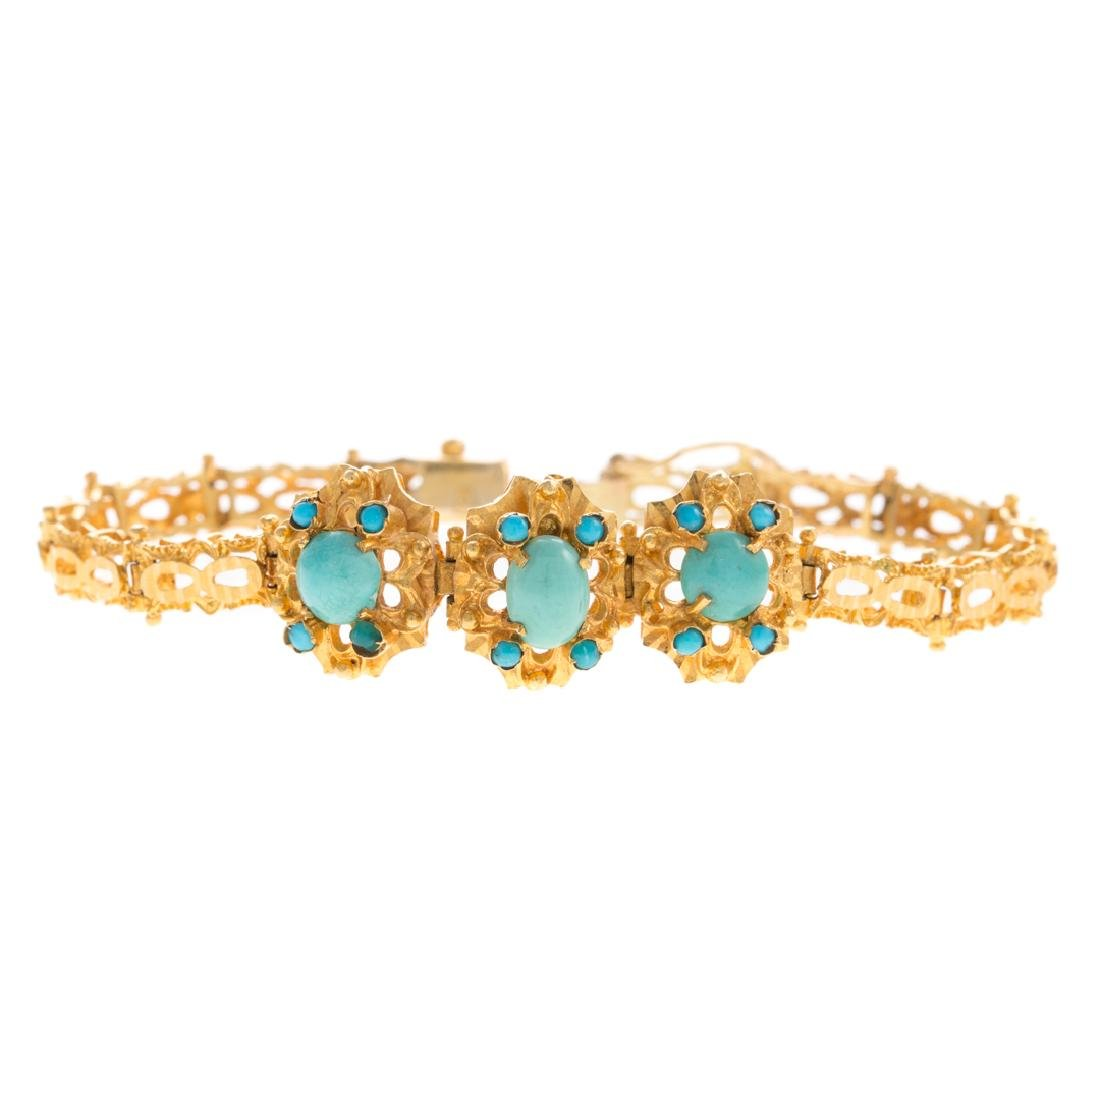 A Lady's 18K Yellow Gold Turquoise Link Bracelet